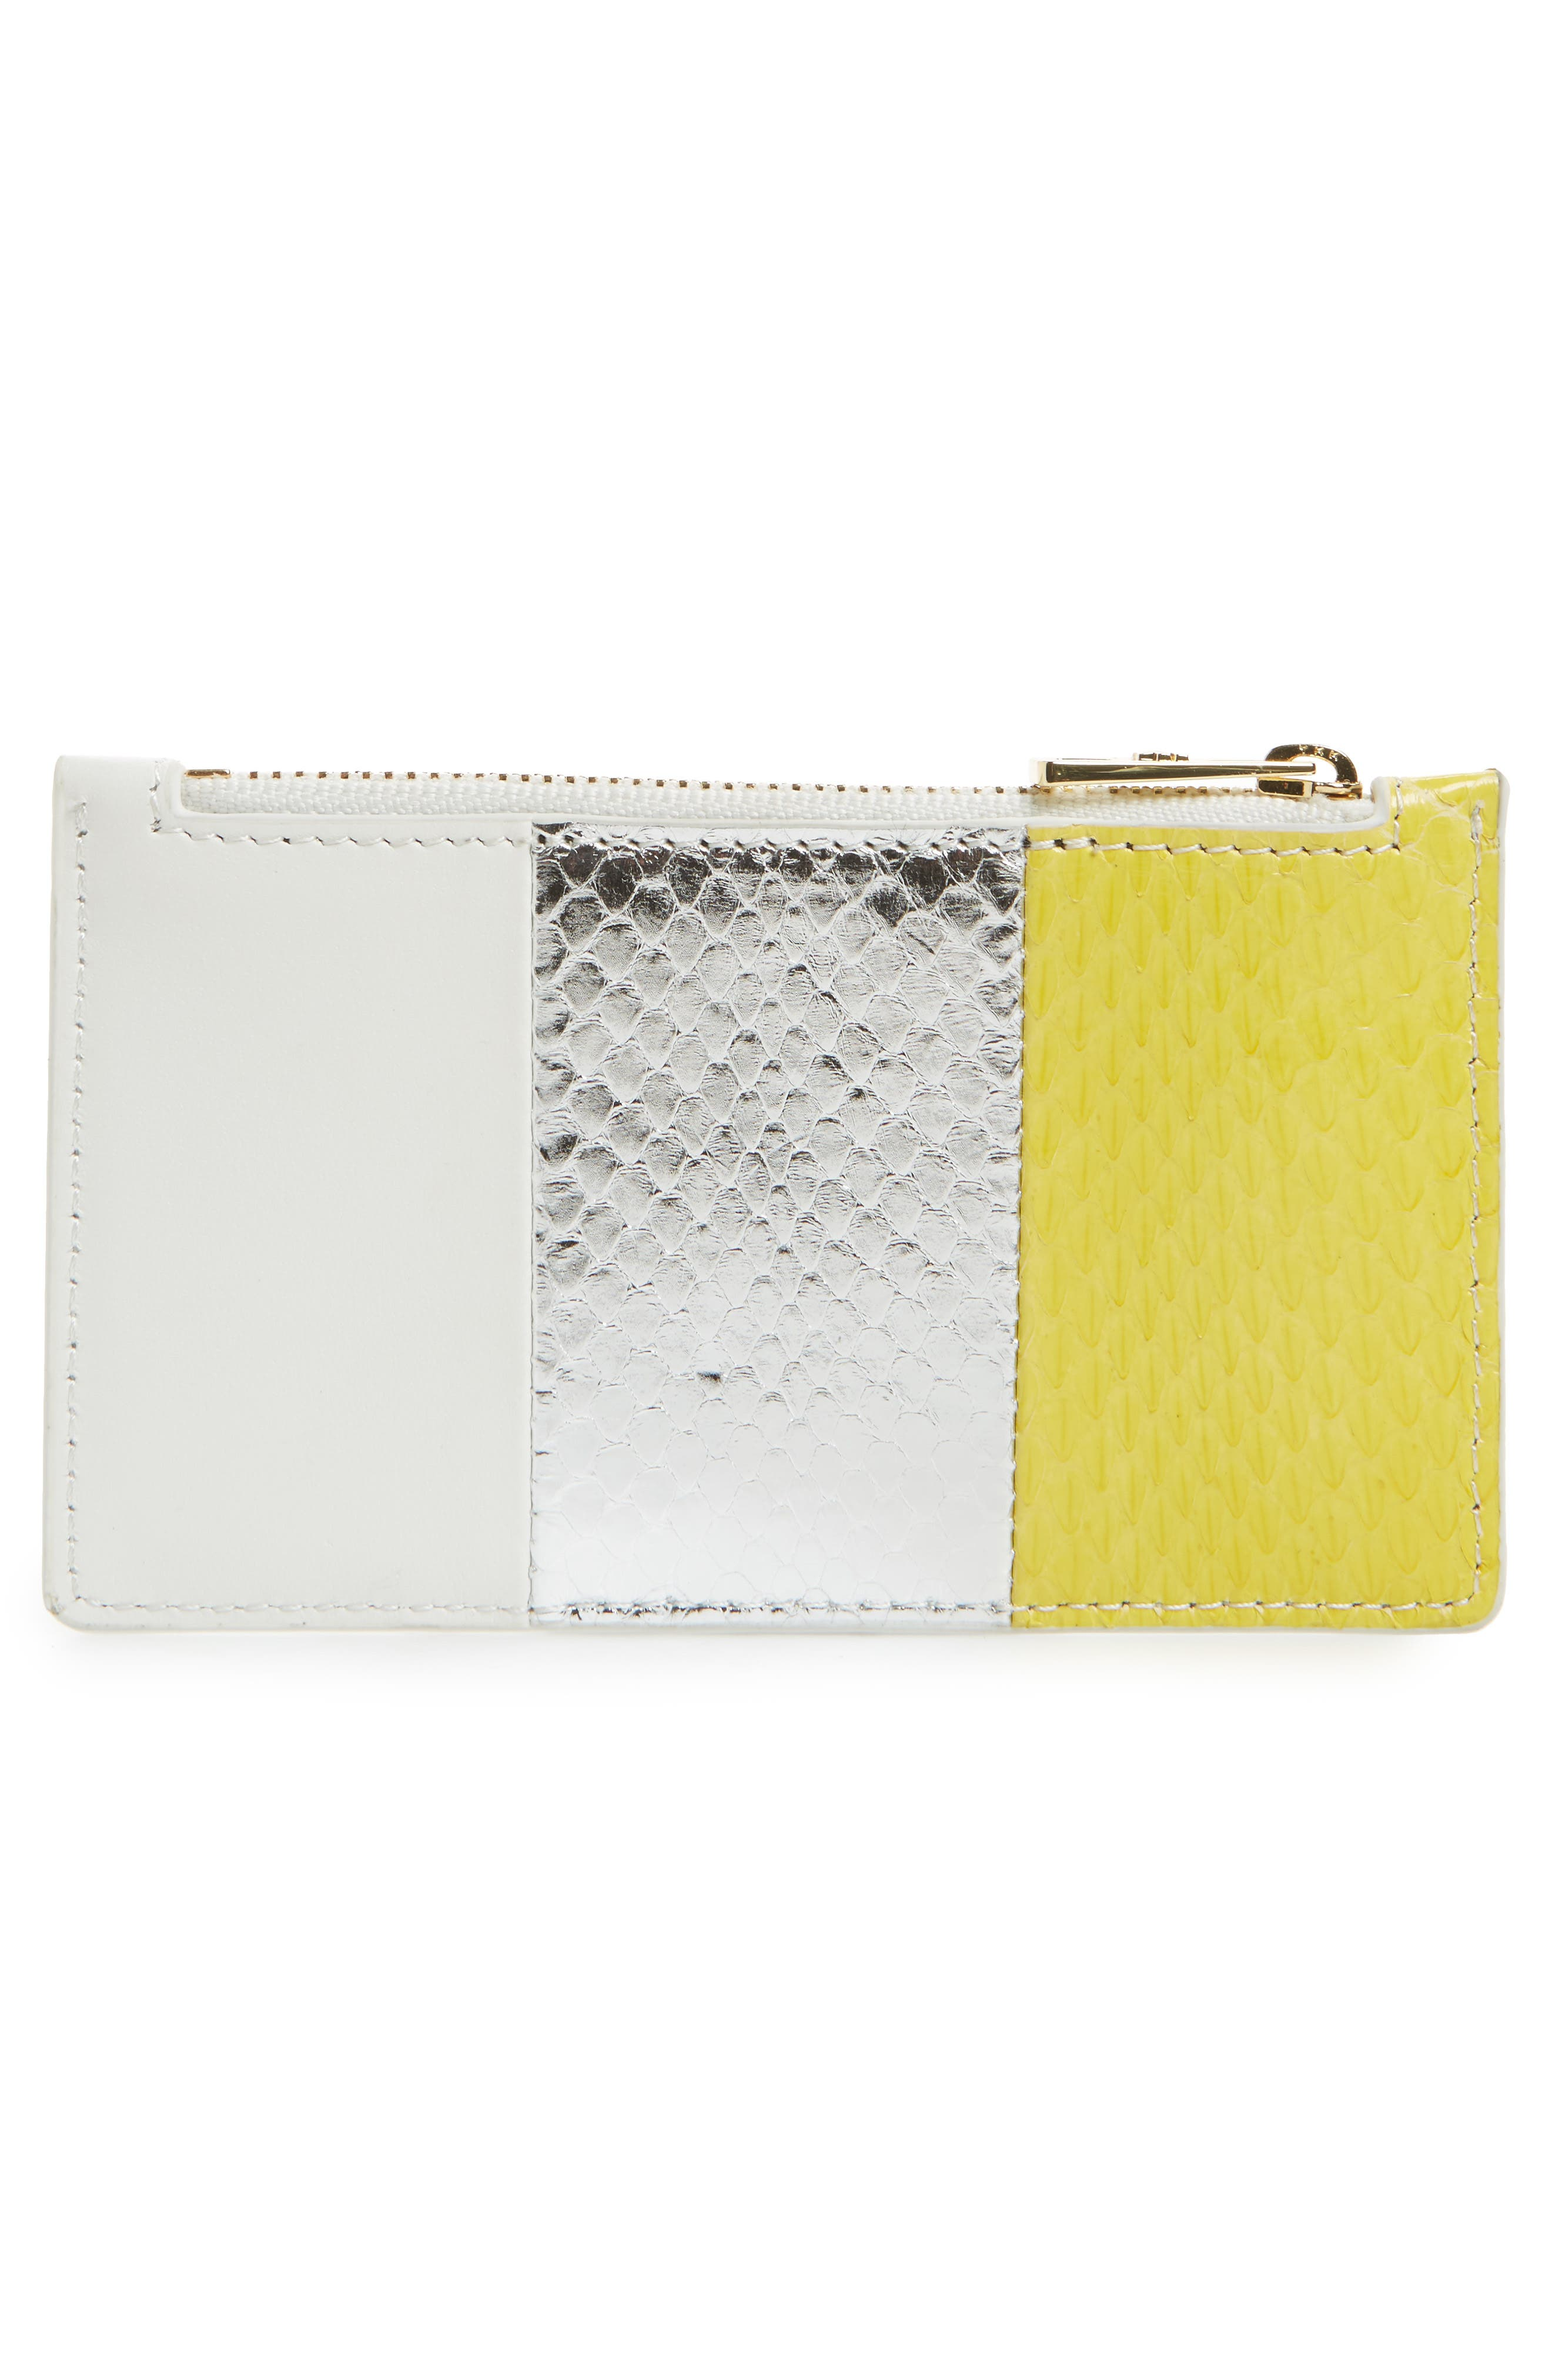 Small Leather & Genuine Snakeskin Card Case,                             Alternate thumbnail 2, color,                             Yellow/ Silver/ White